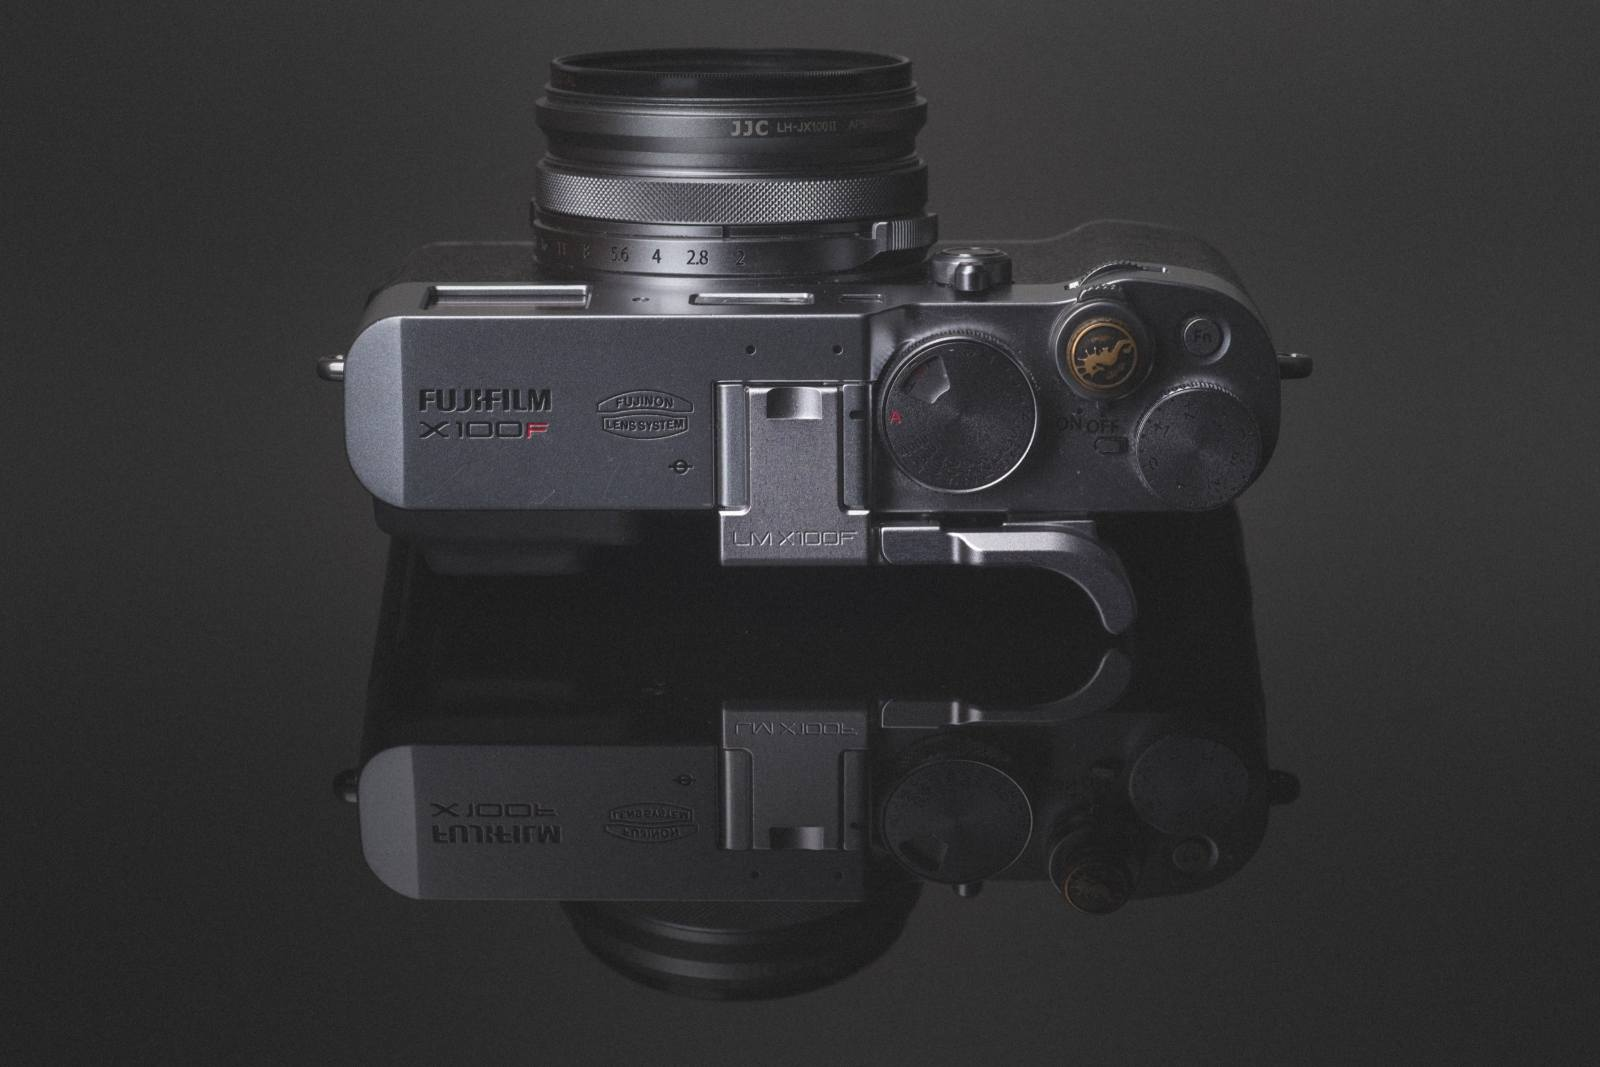 Fujifilm X100F Lensmate Thumb Grip Review